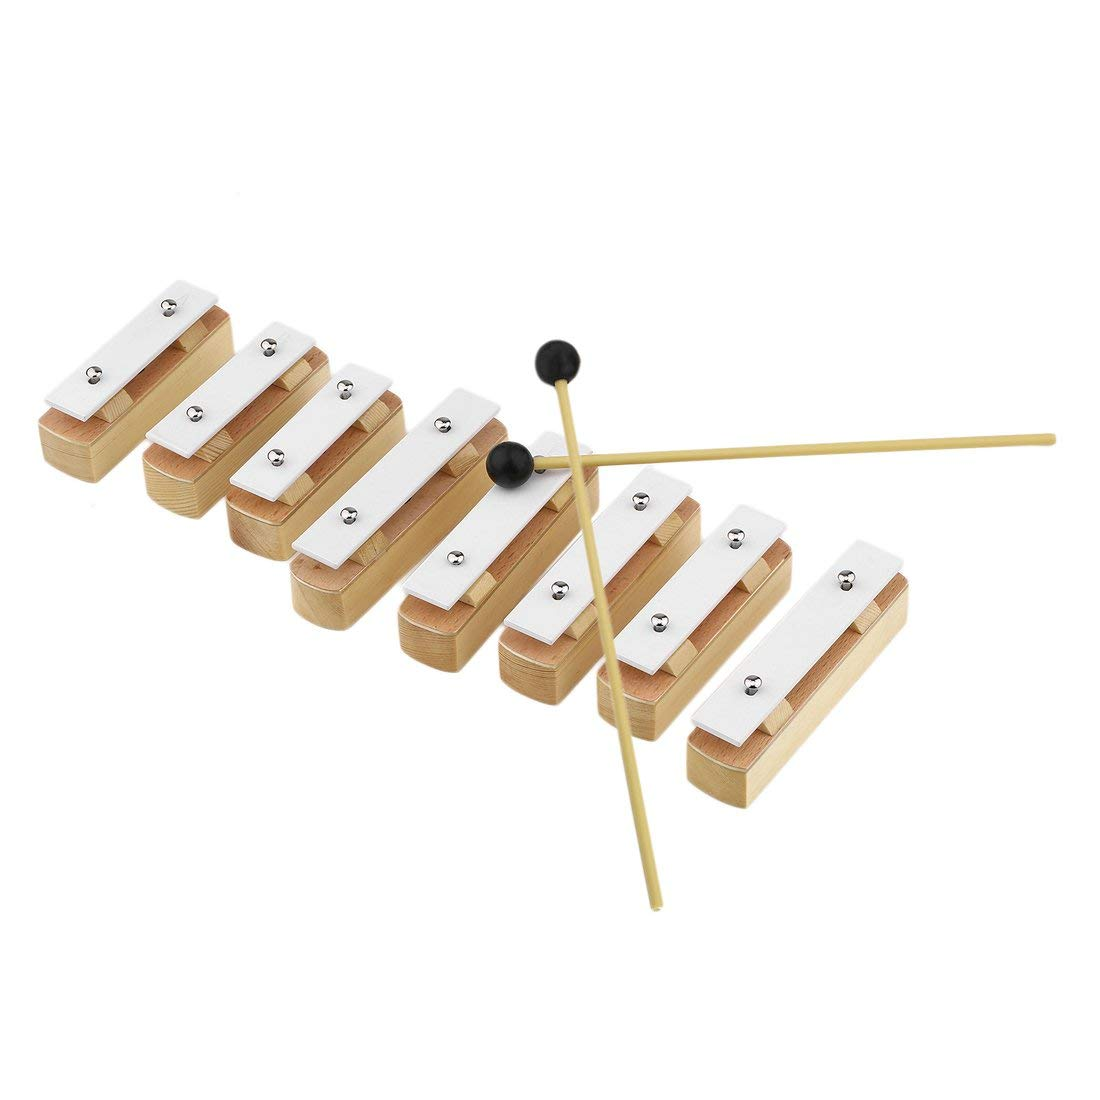 TB8A Special Design Aluminum Wooden Music Instrument 8 Notes Wooden Xylophone Early Childhood Wisdom Music Instrument Formulaone